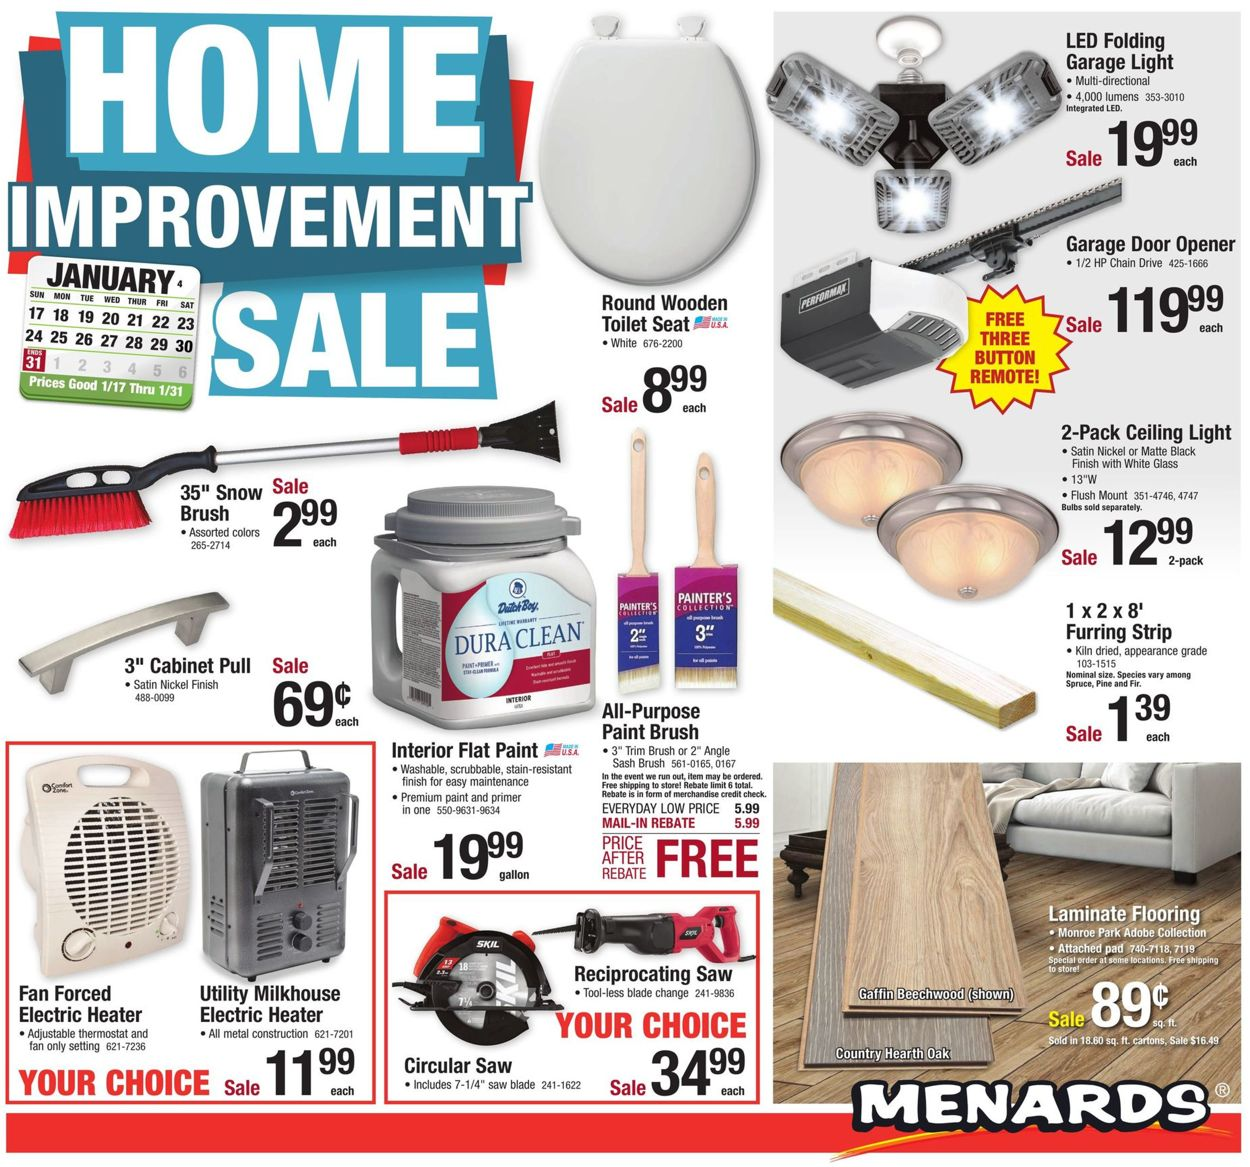 Menards Home Improvement Sale 2021 Current Weekly Ad 01 17 01 31 2021 Frequent Ads Com